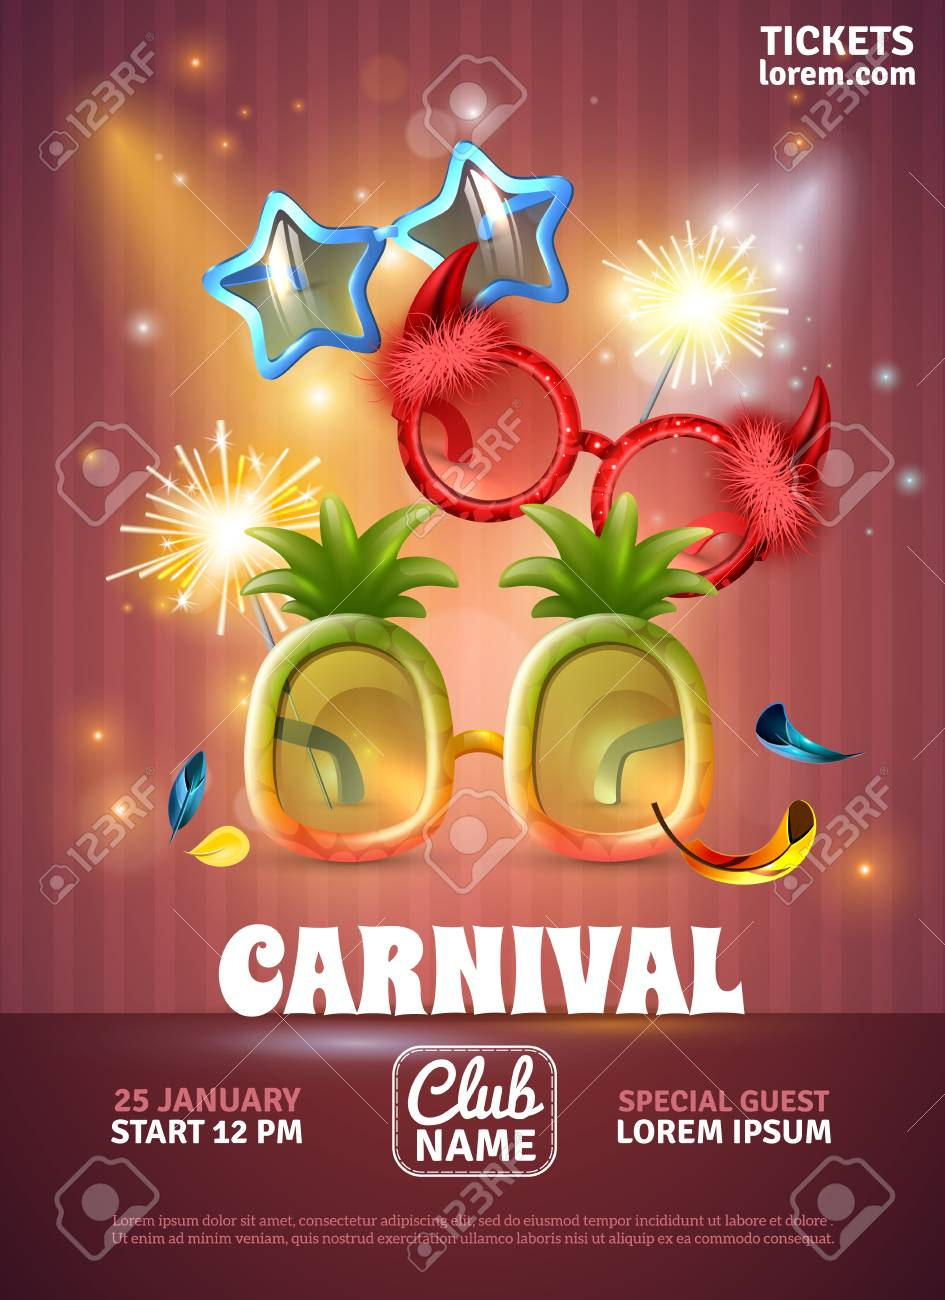 Christmas Carnival Poster.Christmas Party Celebration Carnival Special Club Invitation